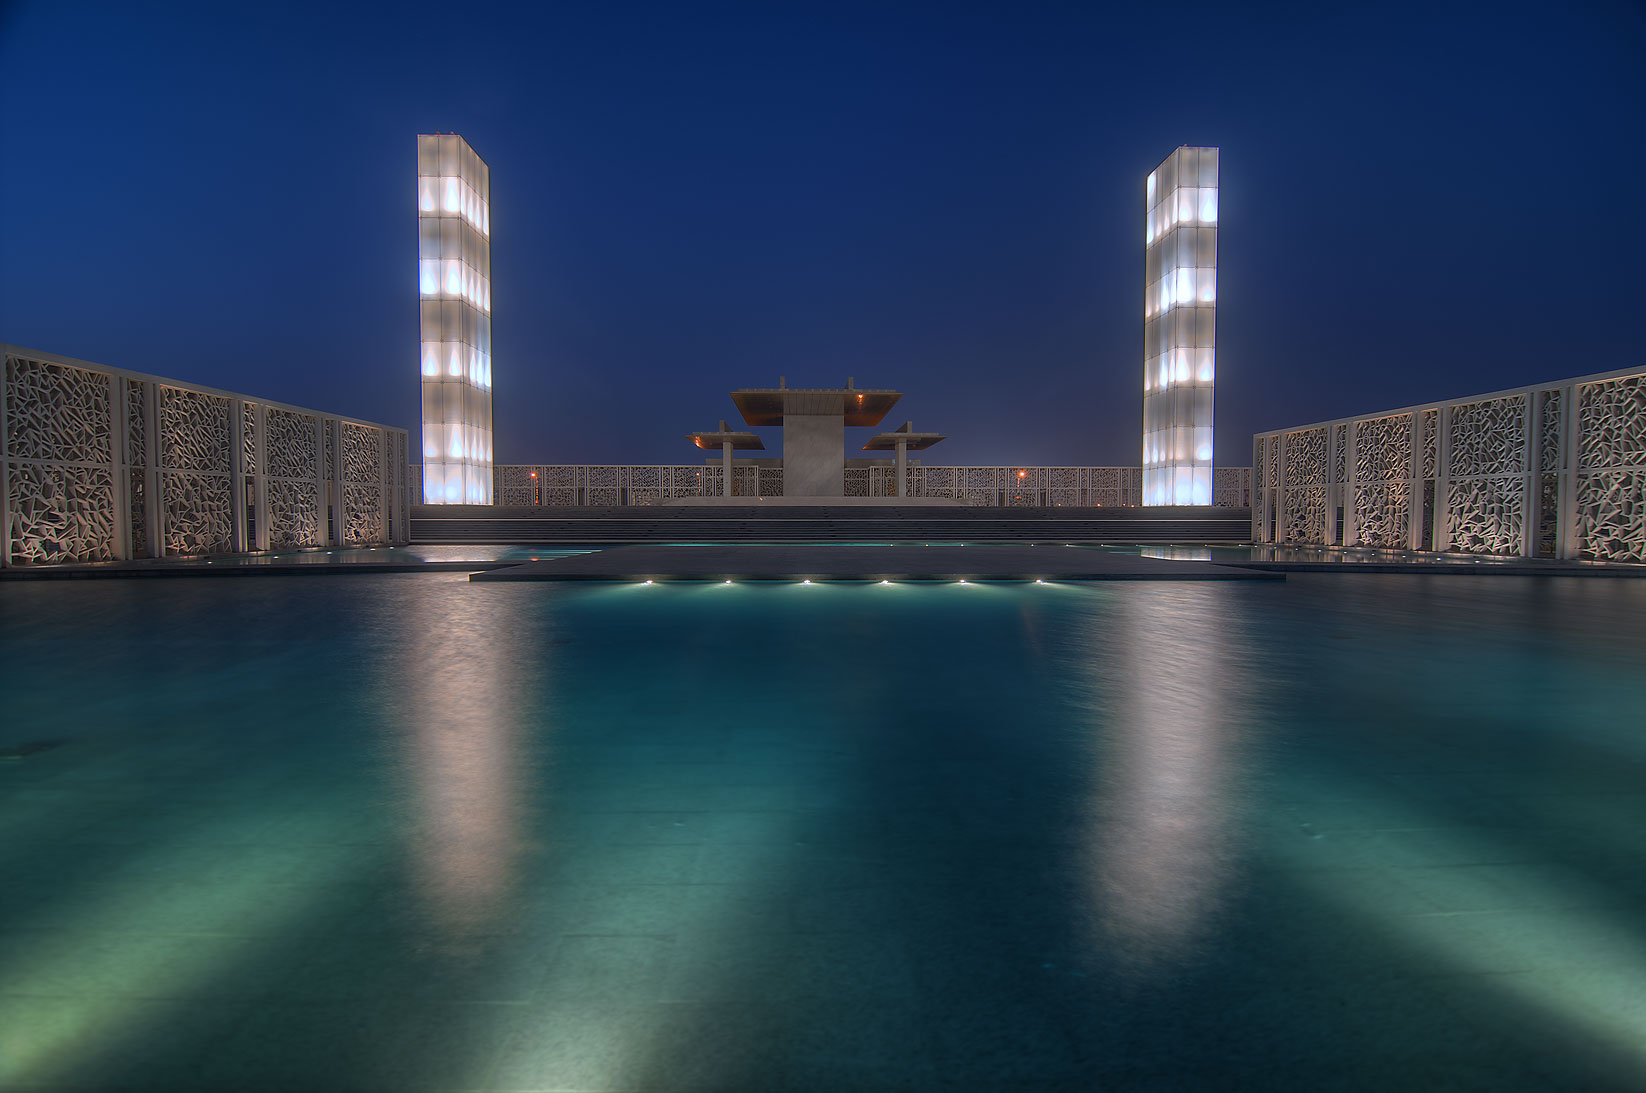 Ceremonial Court in Education City. Doha, Qatar